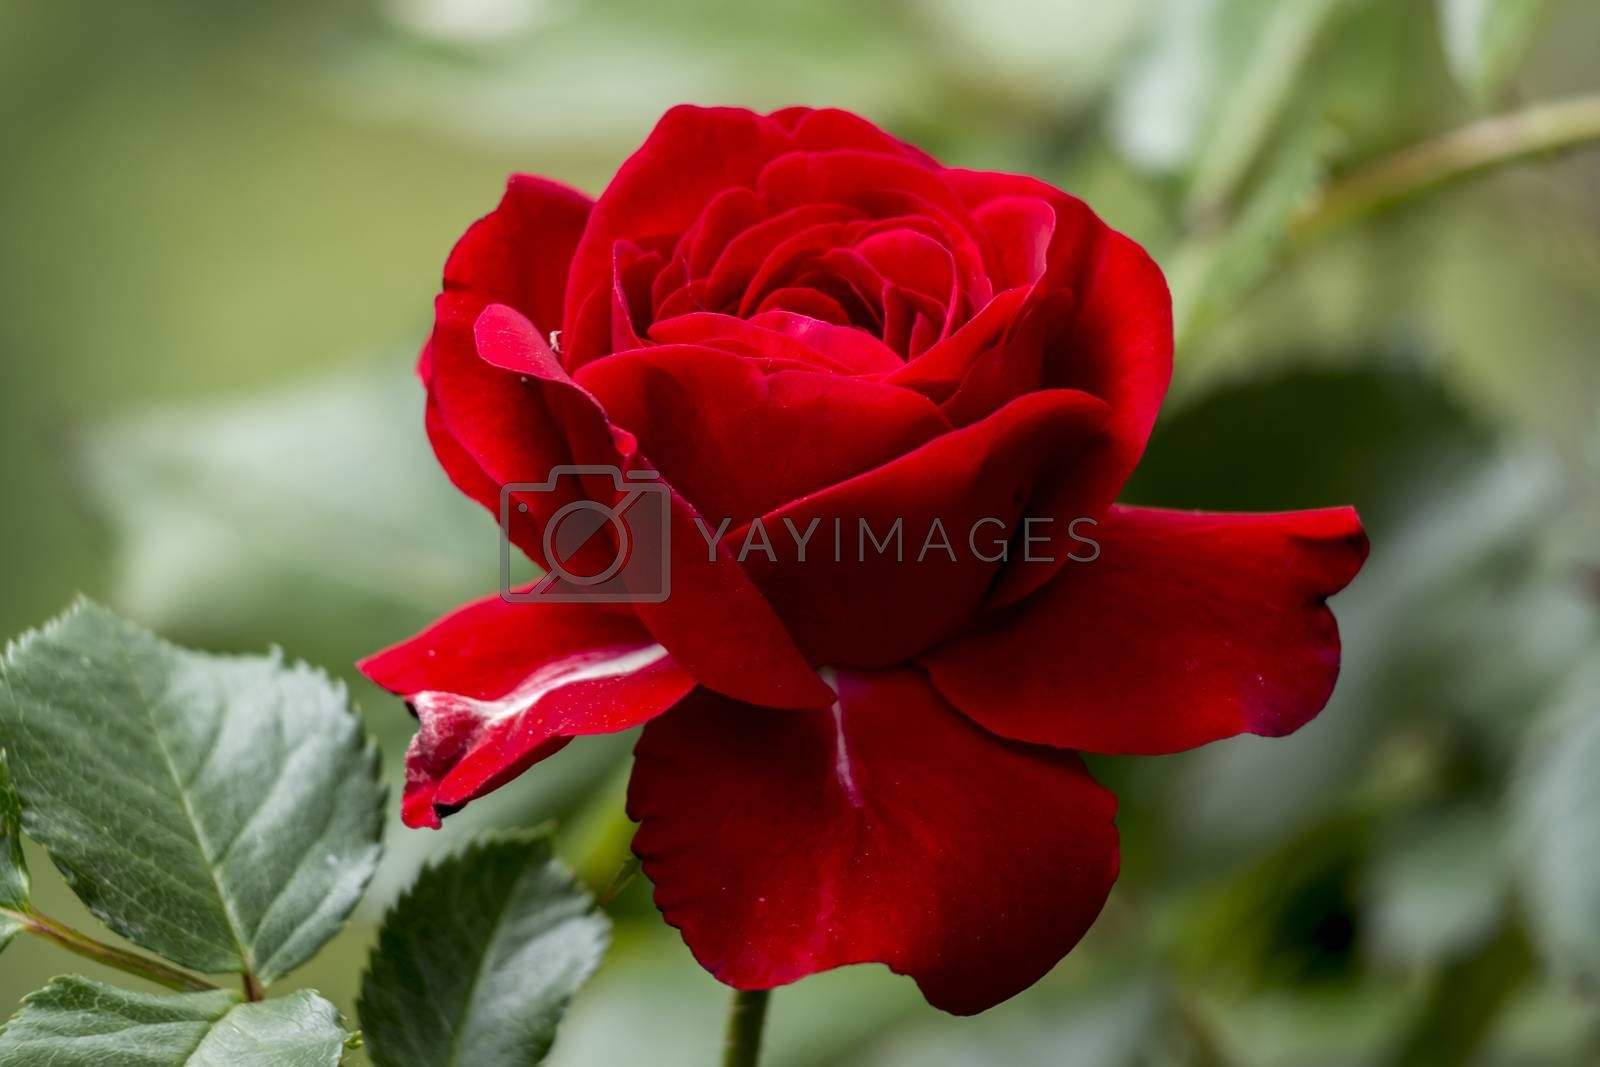 The red rose is filled with water droplets.